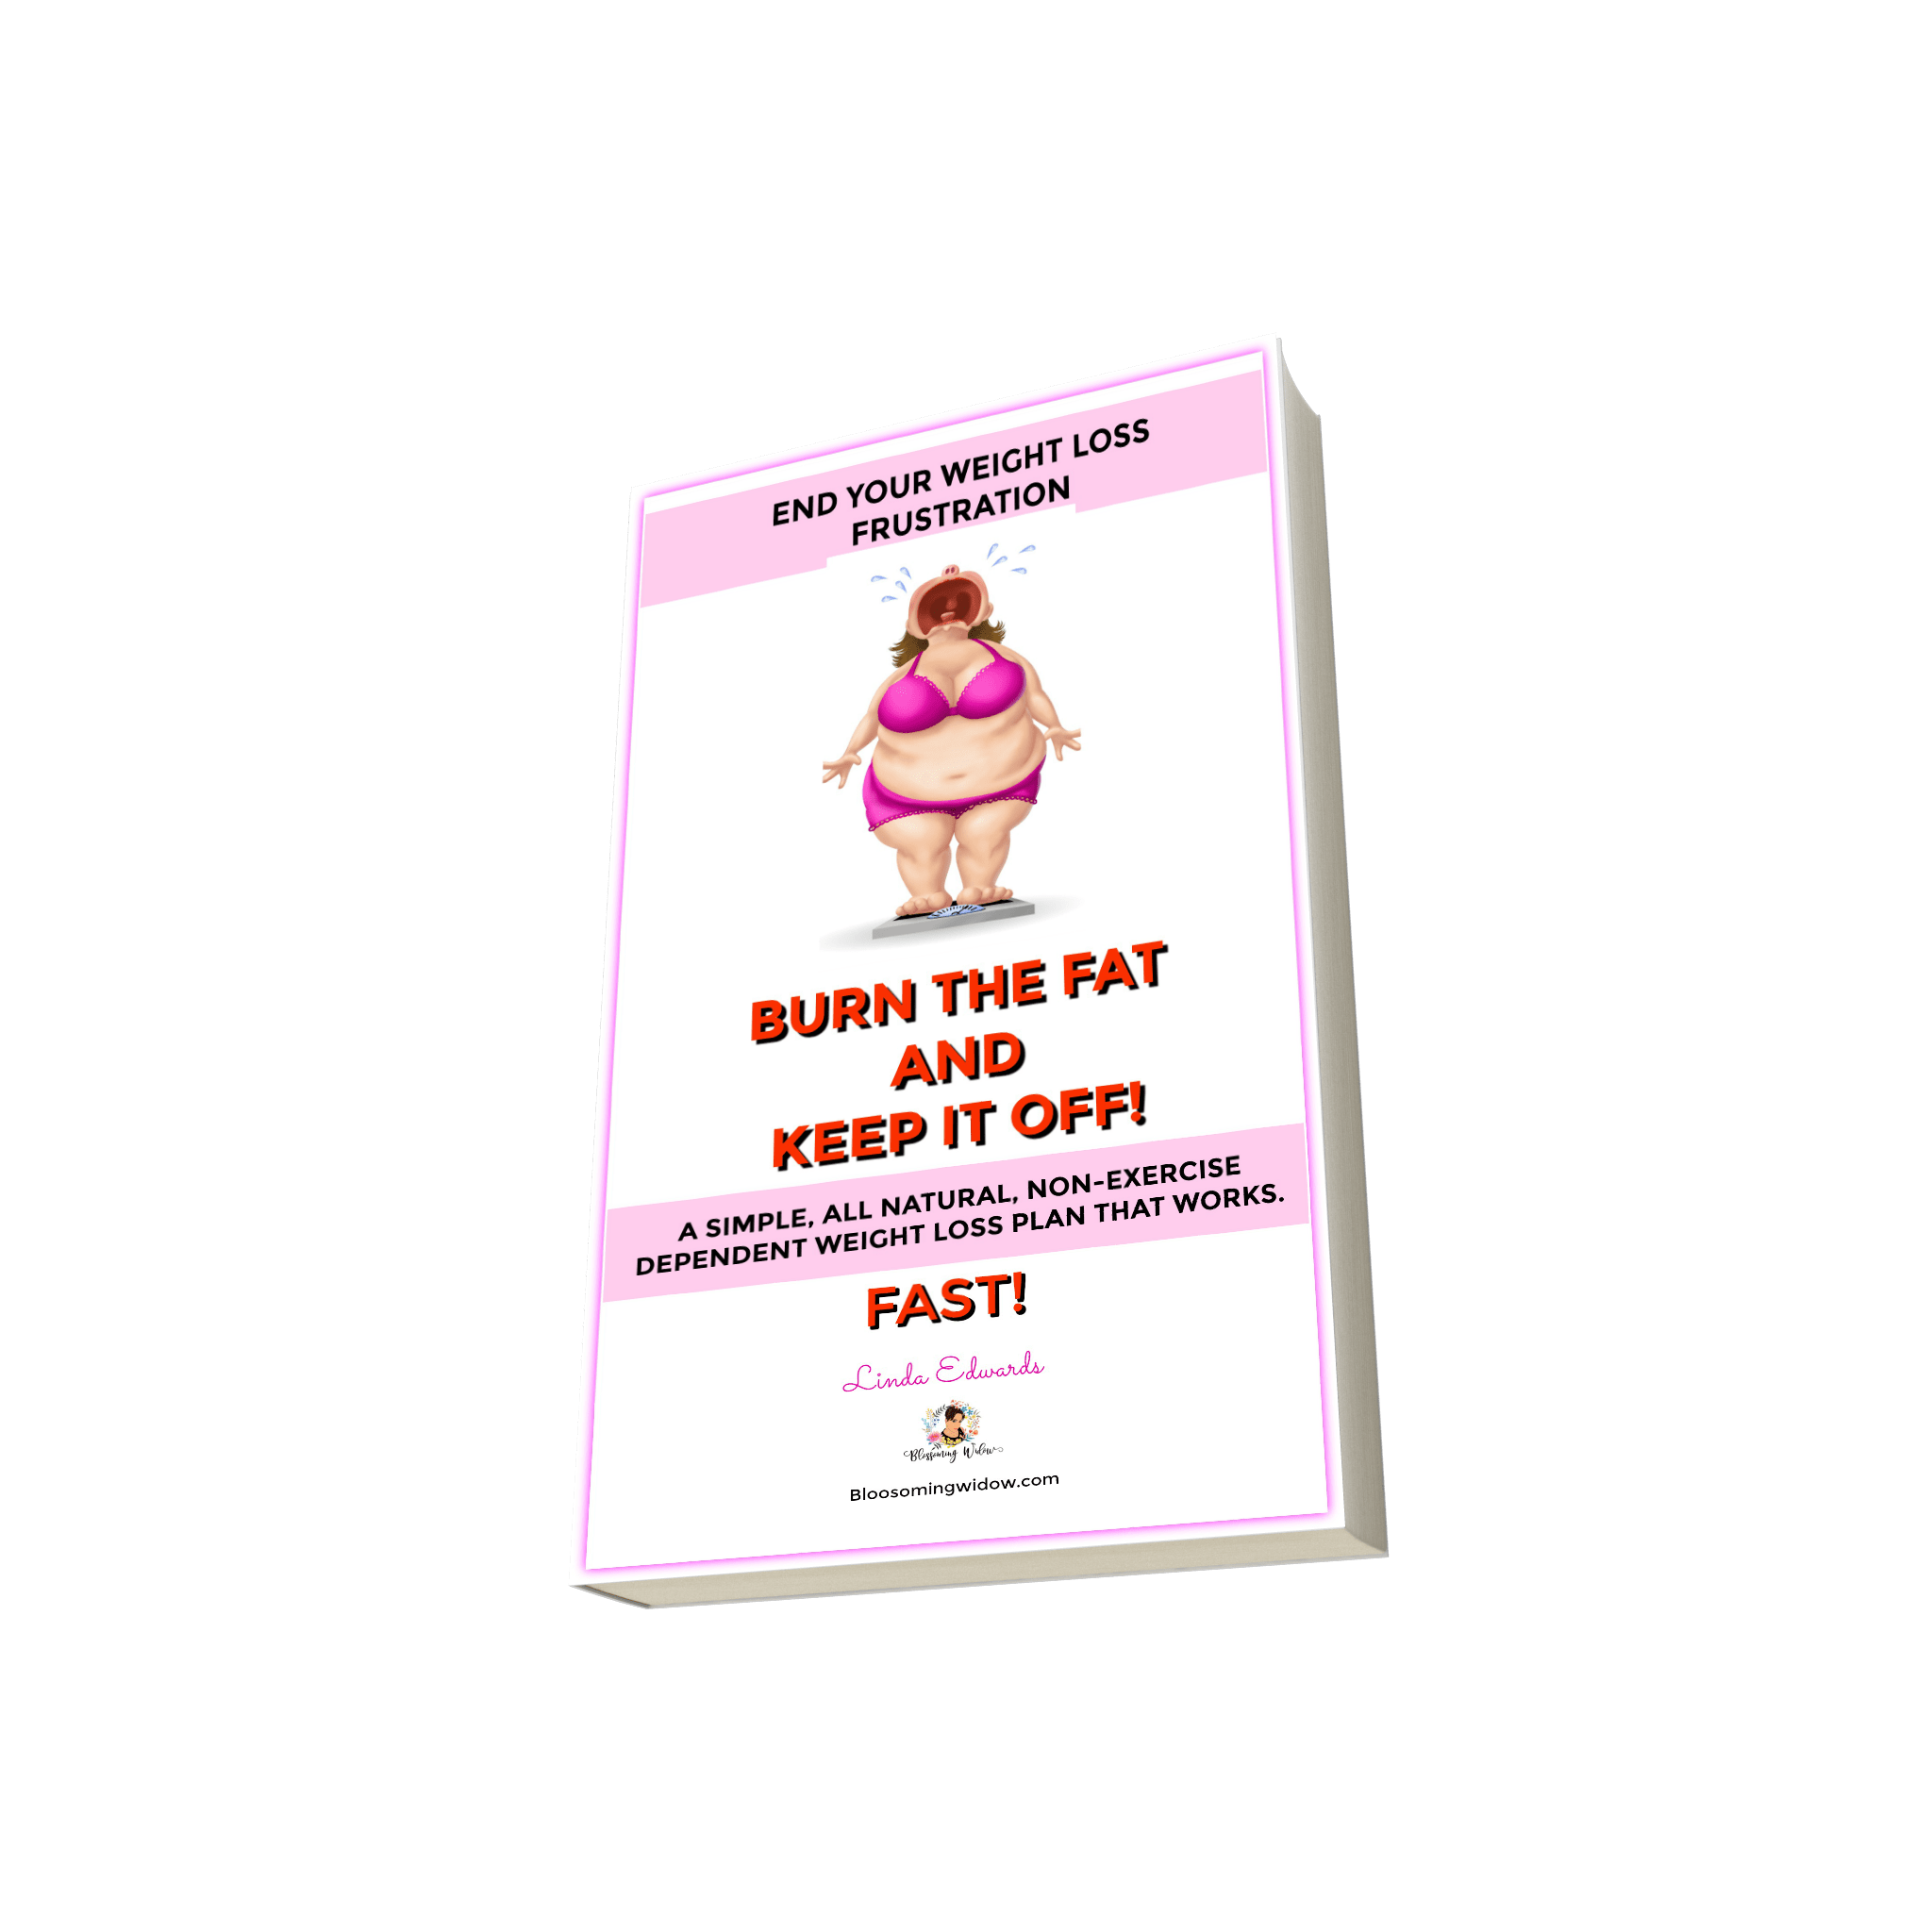 Burn The Fat And Keep It Off Weight Loss Plan : A simple, all natural, non-exercise dependent weight loss plan that works fast!